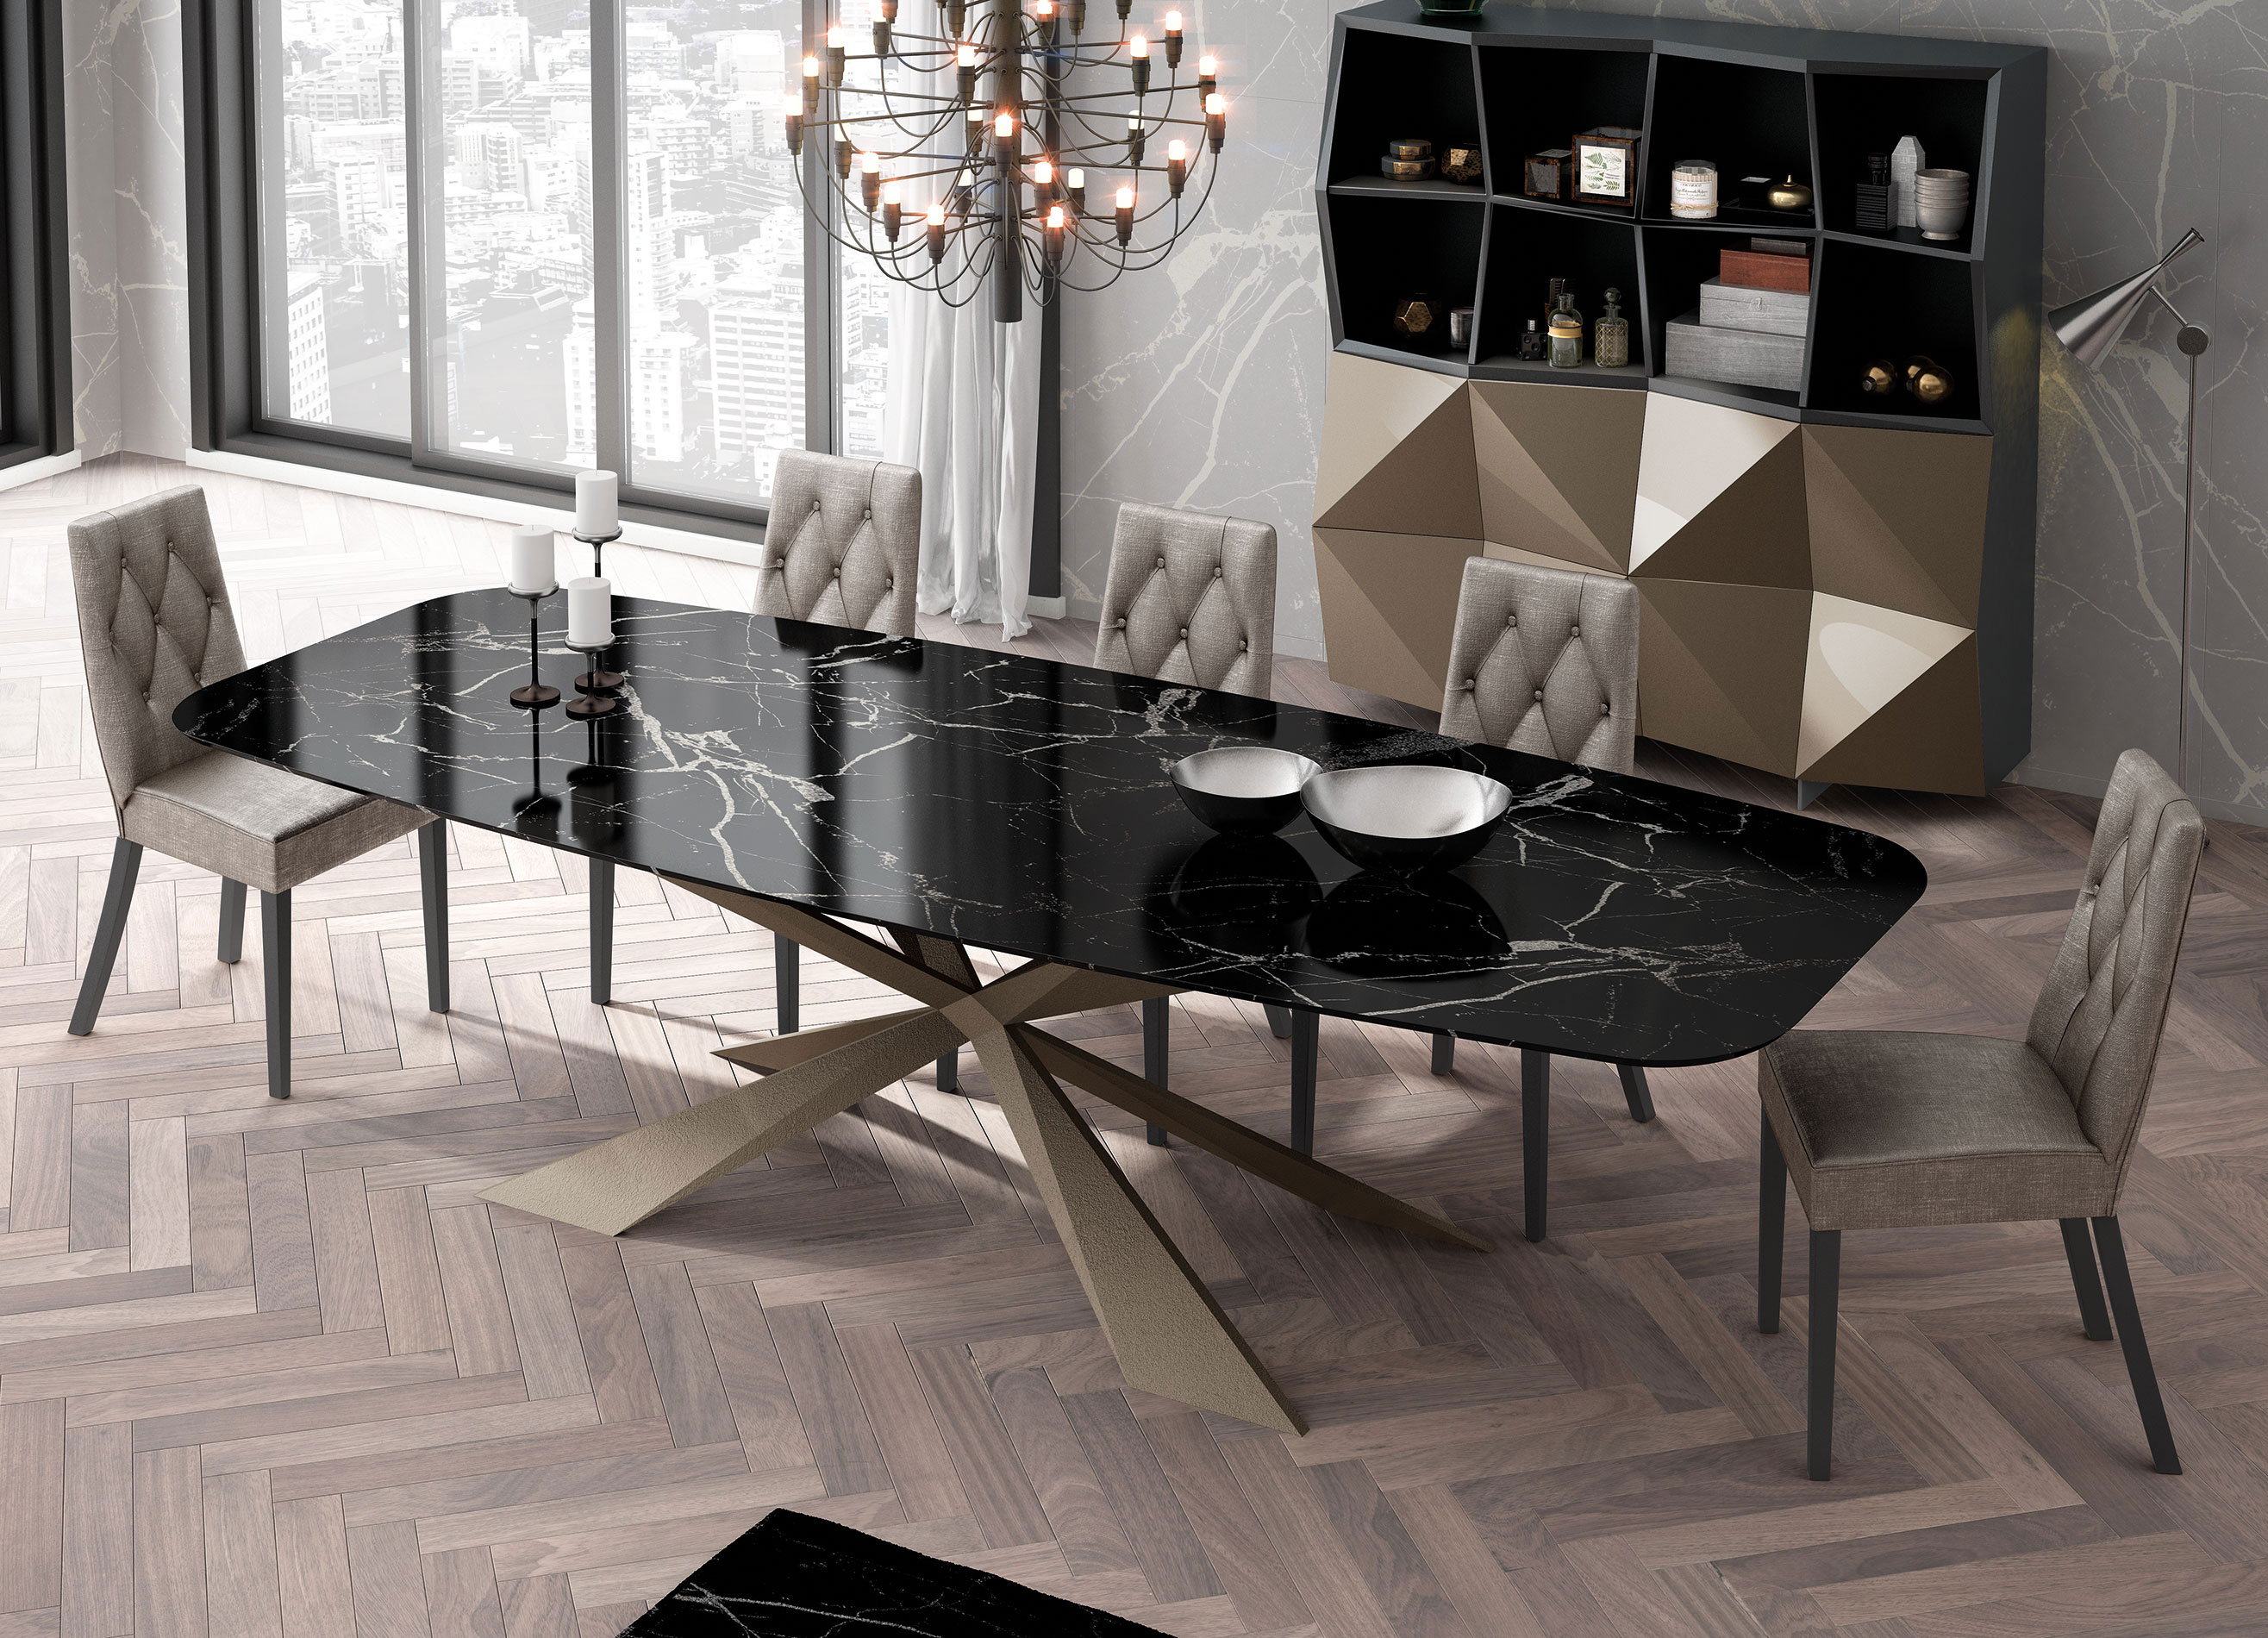 table, modern table, gold legs table,lamina table, trapezi, chairs, grey chairs, karekles, bookshelf, accessories, dining table, kitchen table, andreotti, andreotti furniture, epipla, furniture, limassol, cyprus